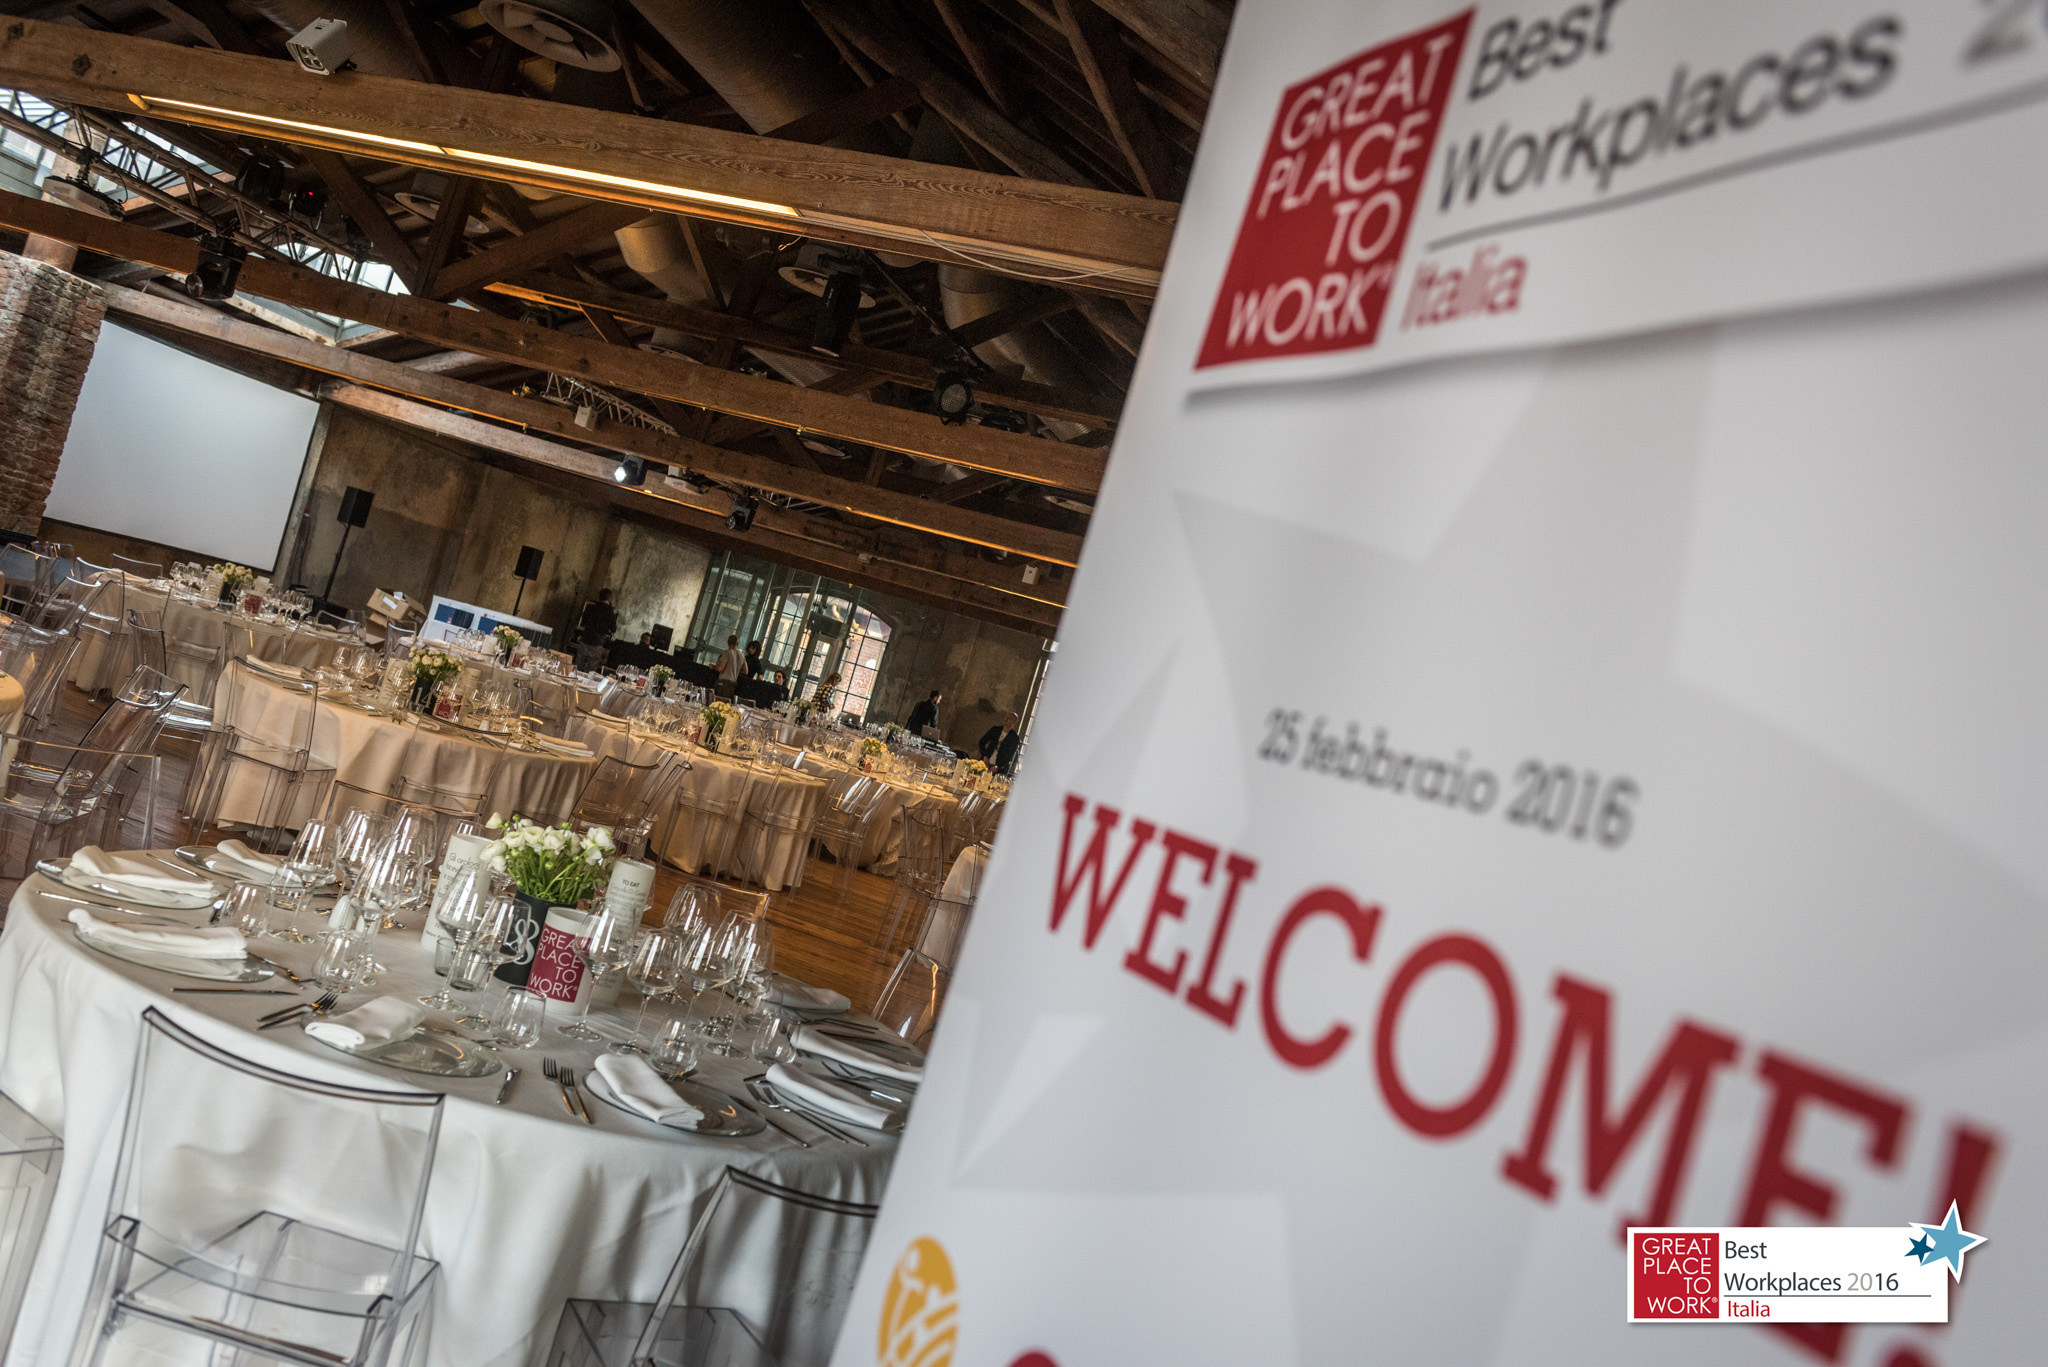 Classifica Best Workplaces™ Italia 2016 - le aziende premiate